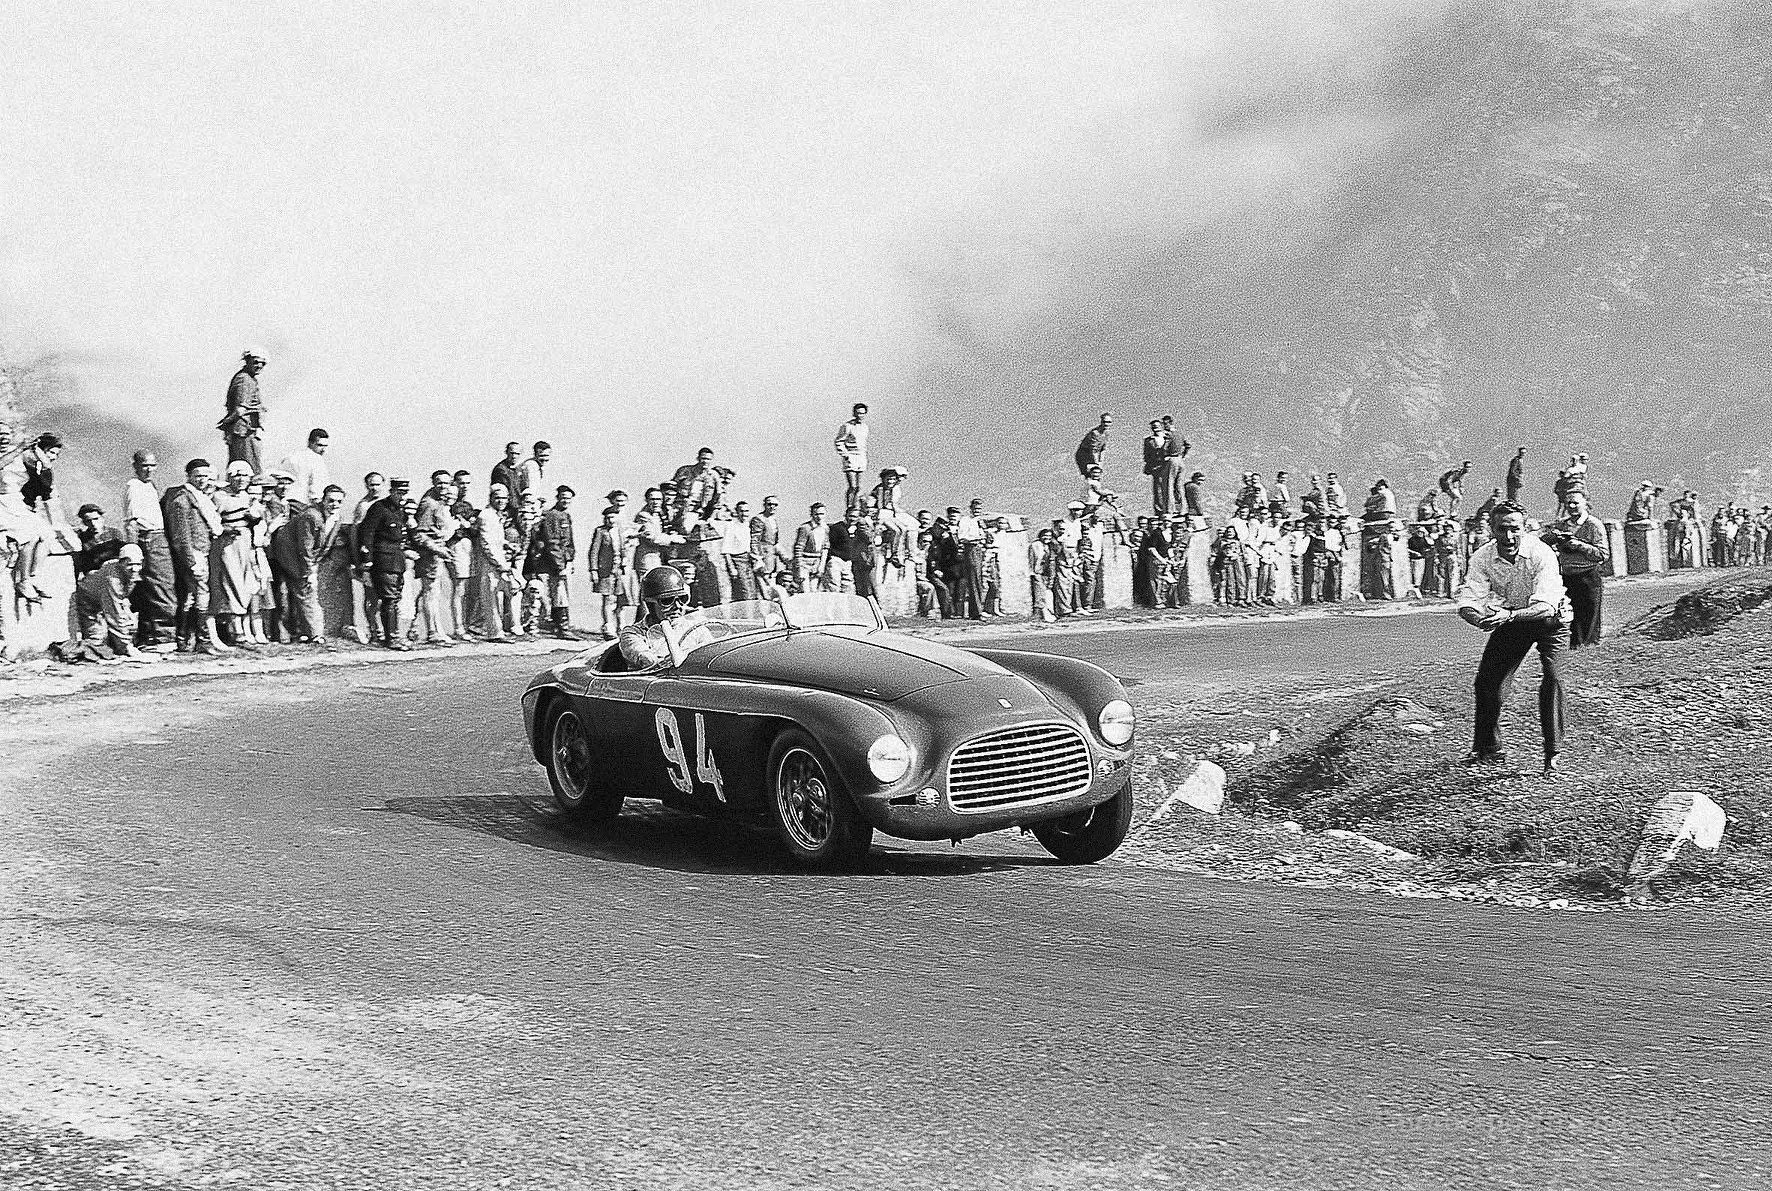 275 S/340 America Touring Barchetta at 1951 Susa-Moncenisio hillclimb